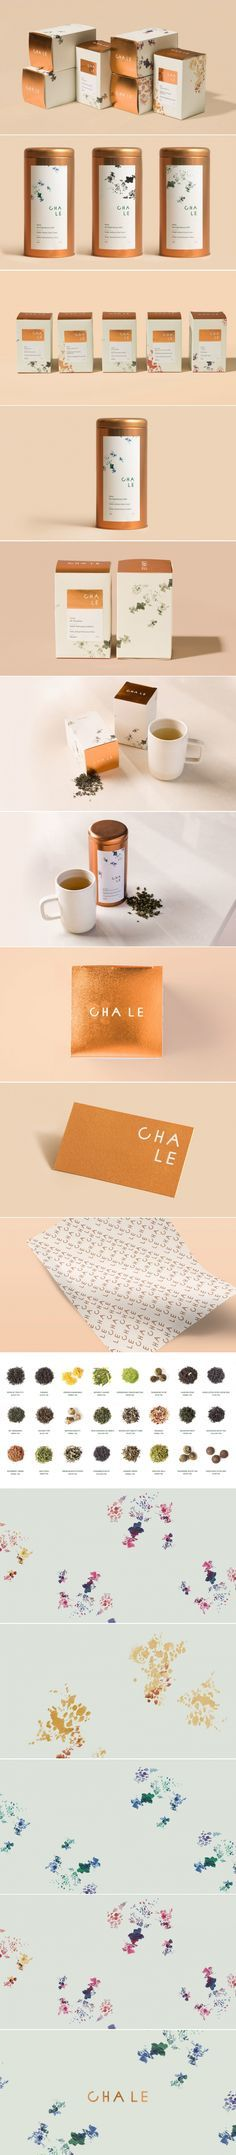 Sip Your Tea in Style With Cha Le — The Dieline | Packaging & Branding Design & Innovation News